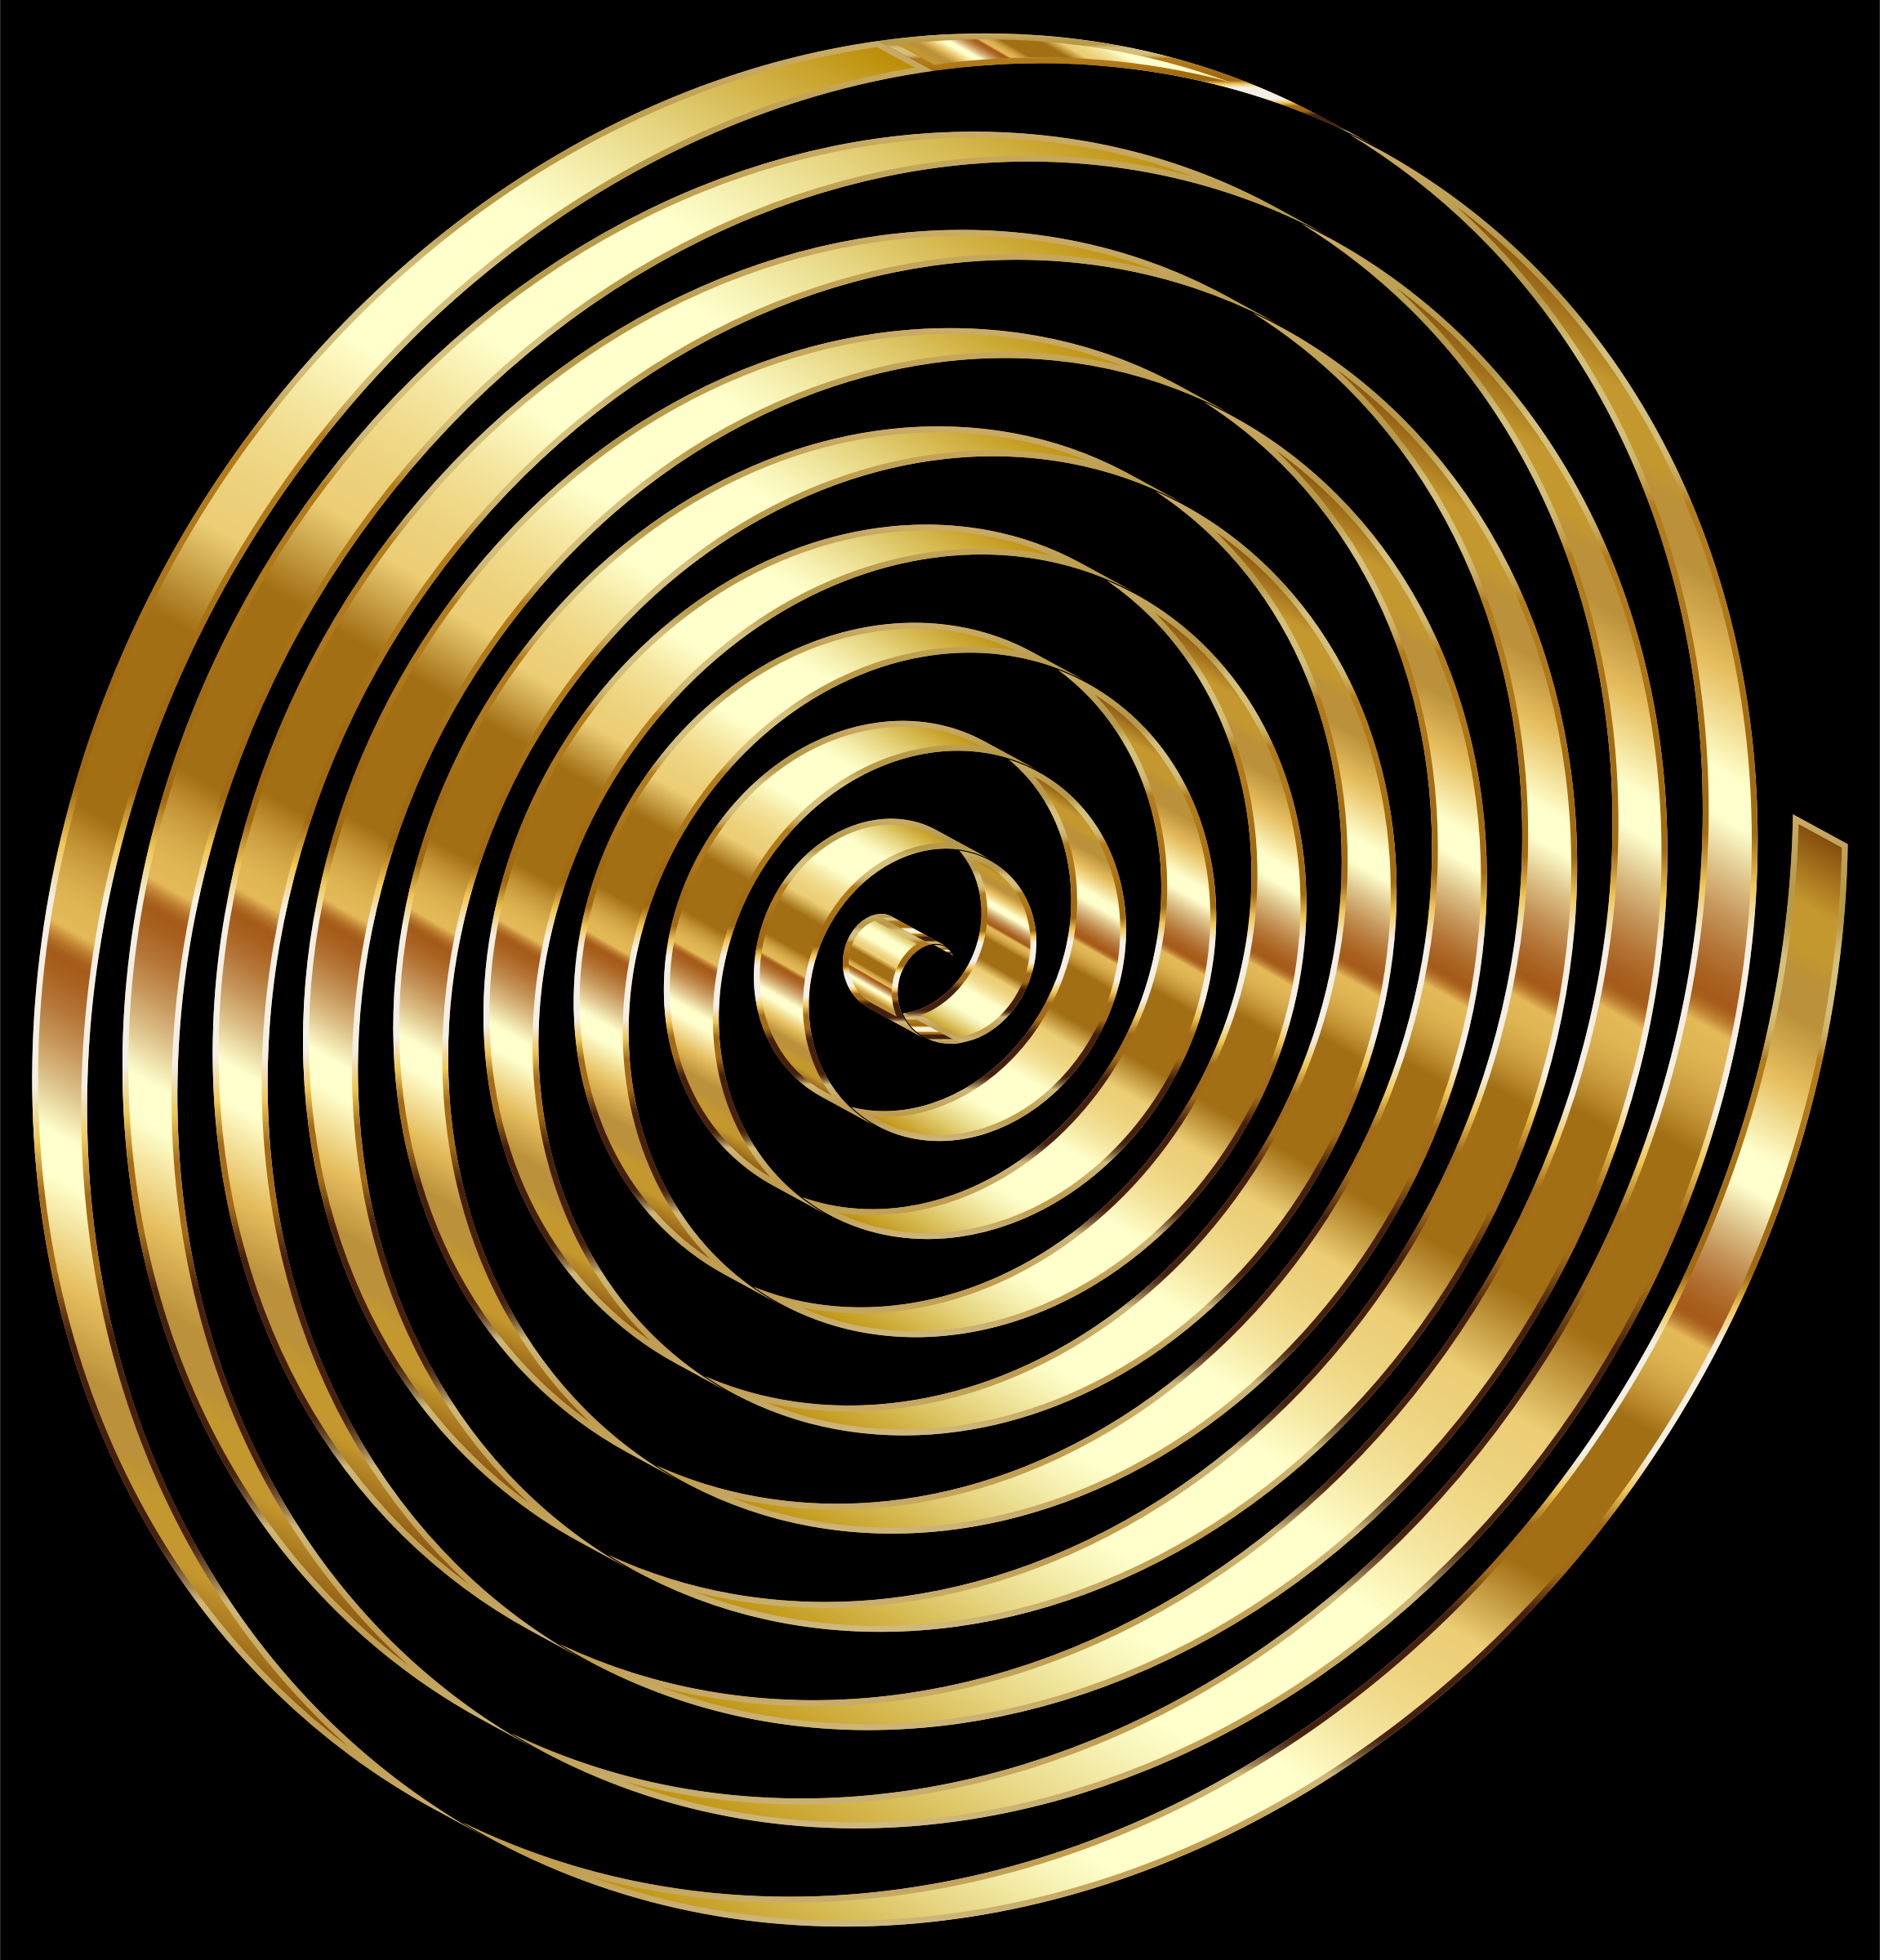 Gold 3D Spiral Variation 2 by GDJ